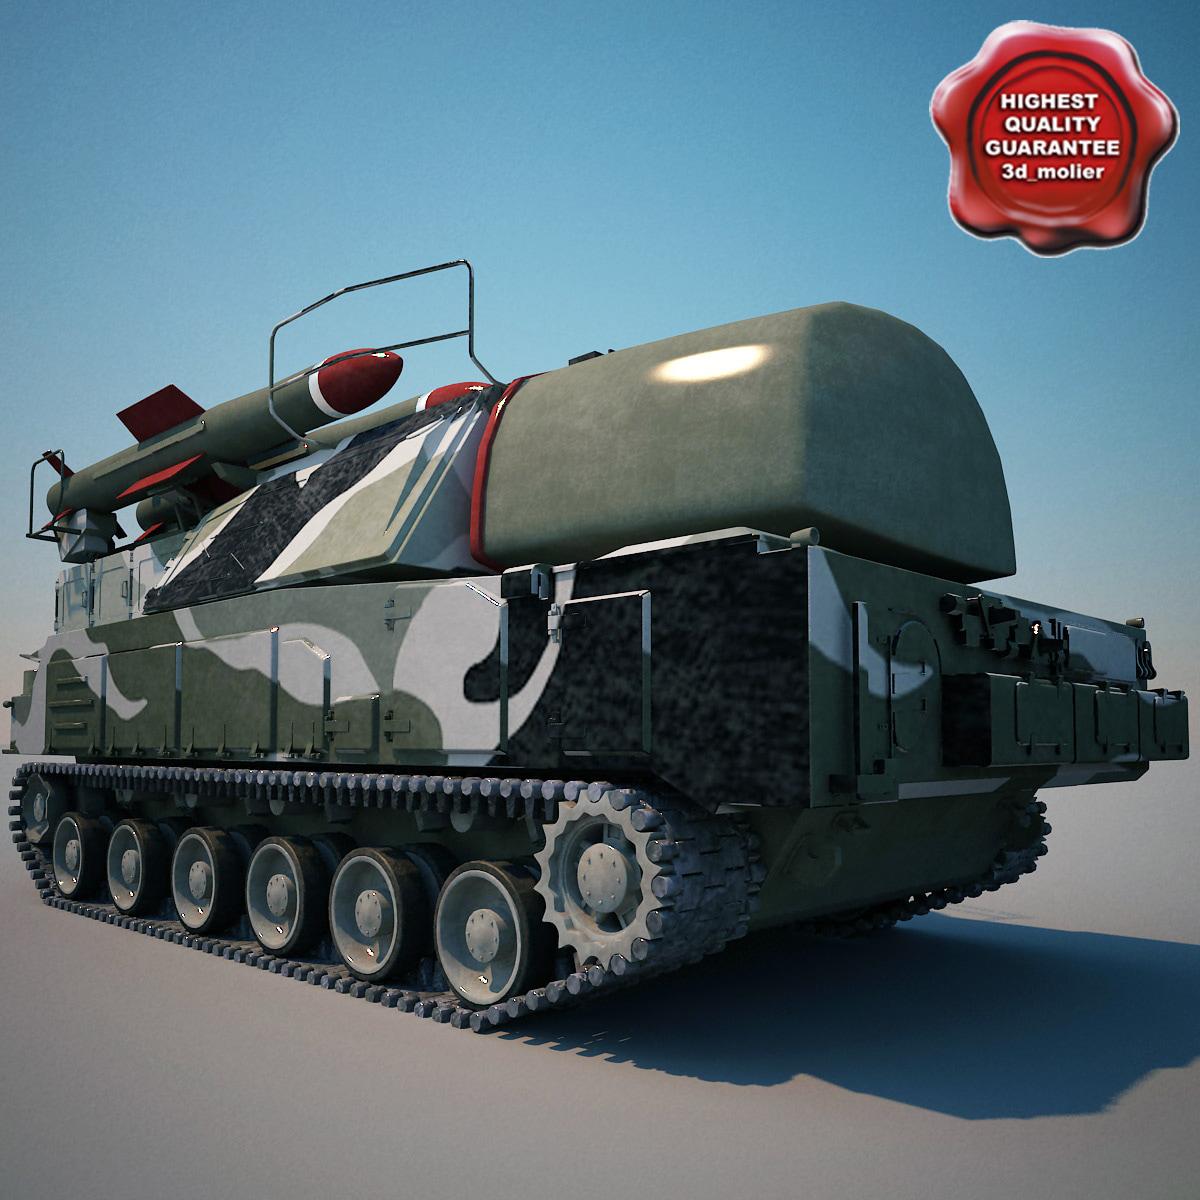 Buk missile system SA-17 Grizzly